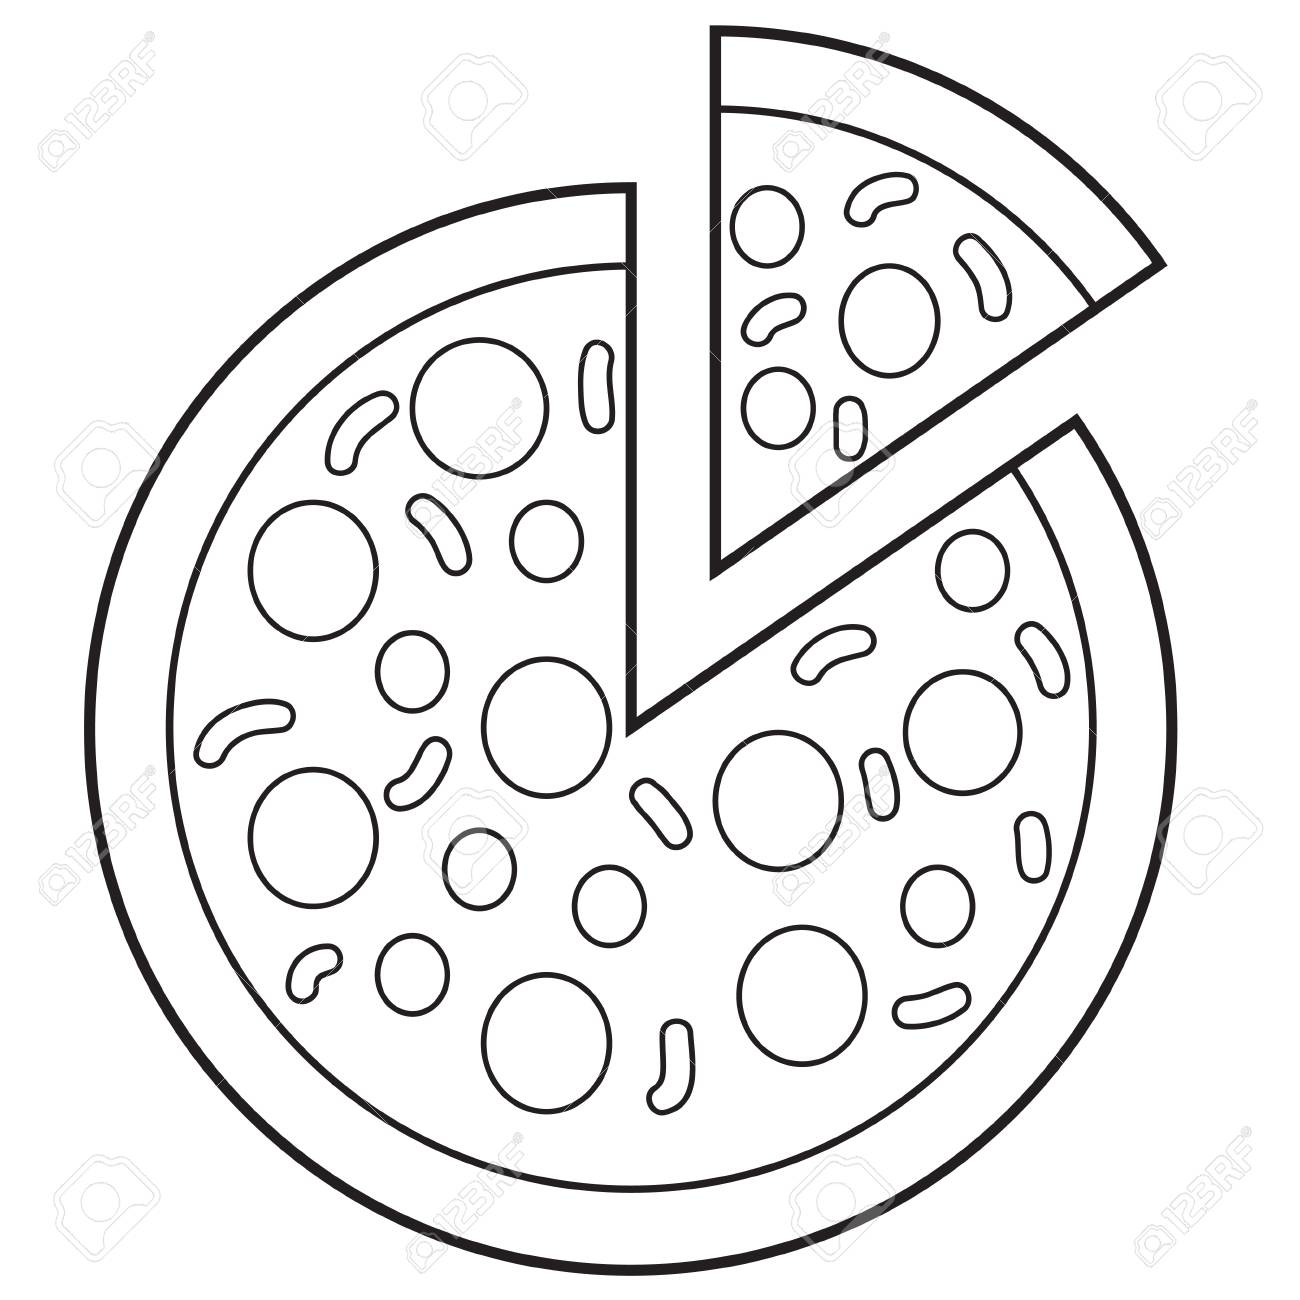 1300x1300 Vector Illustration Of Pizza In Black And White Outlined Doodle